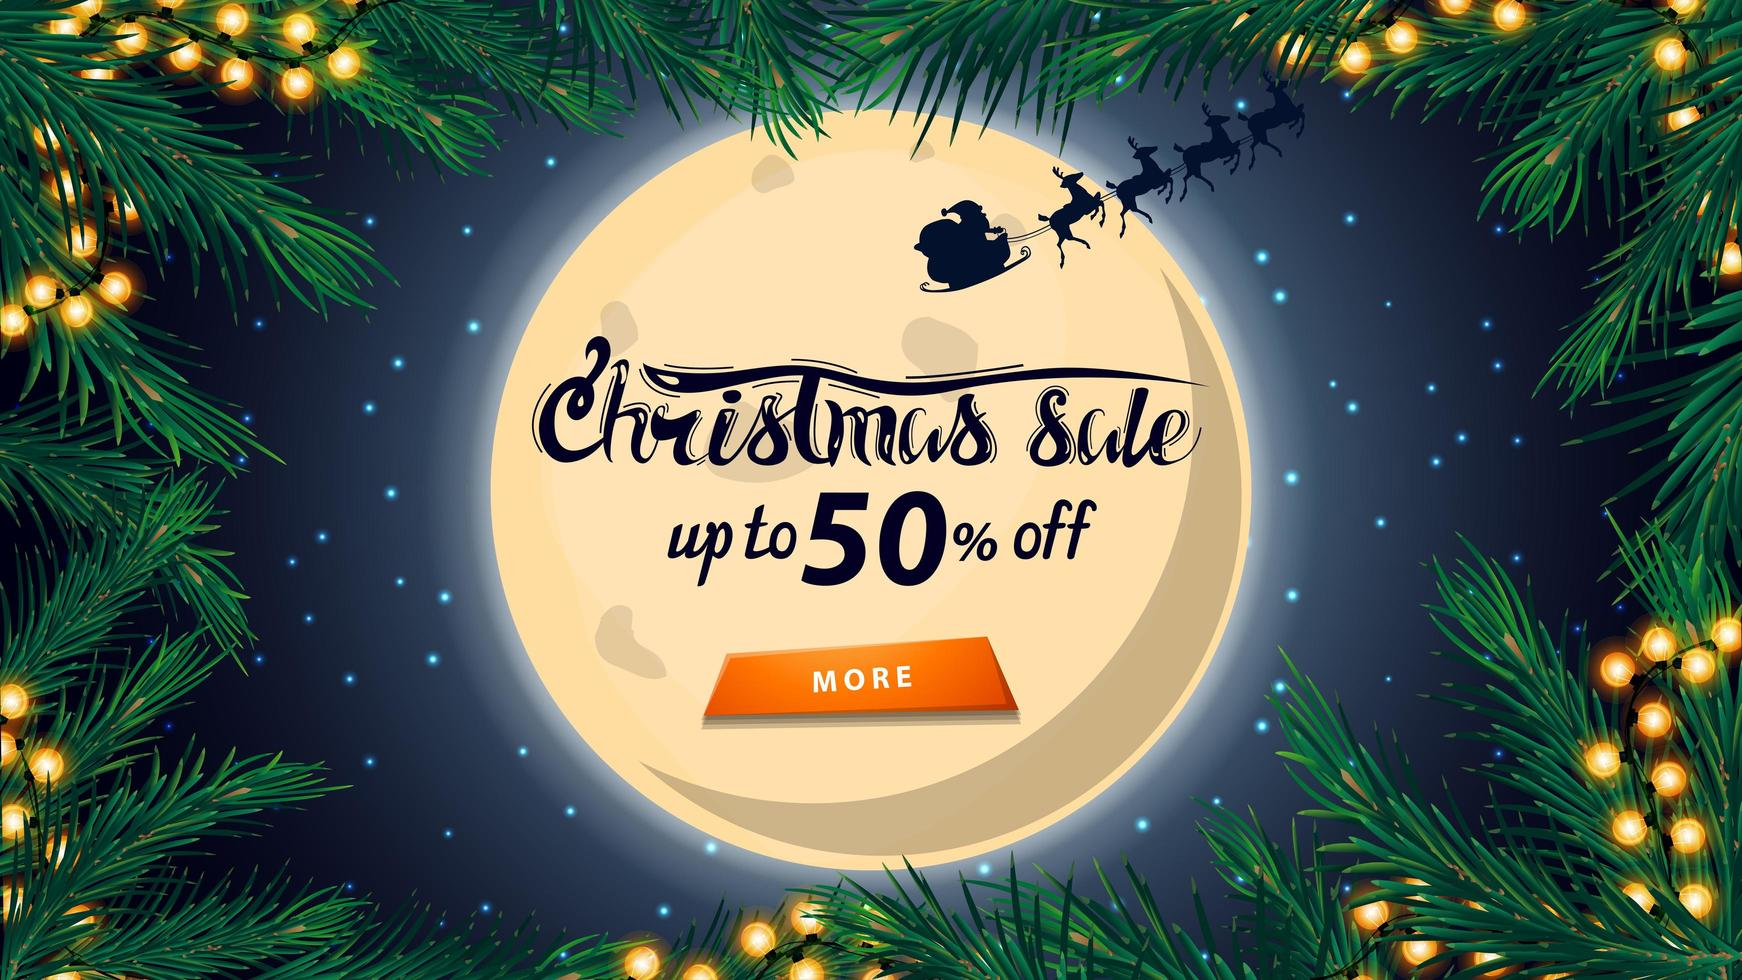 Christmas sale, up to 50 off, discount banner with big full moon on starry sky, silhouette Santa Claus, frame of Christmas tree and orange button vector